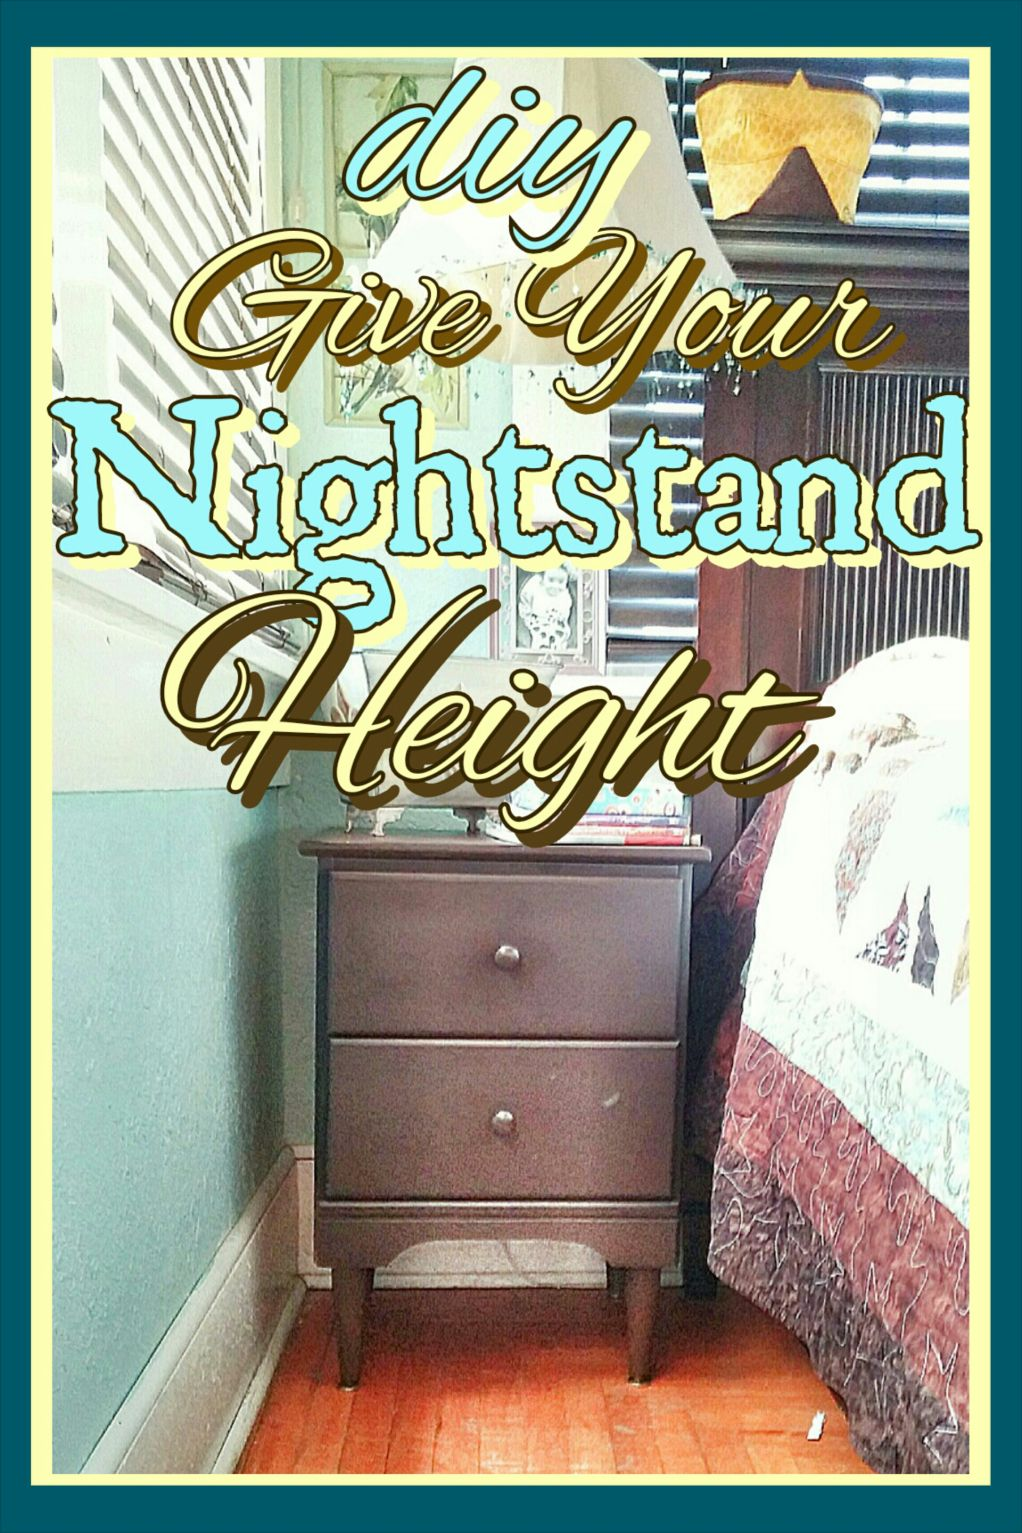 How To Add Height To Your Nightstand Refurbished Night Stand Furniture Projects Nightstand Makeover